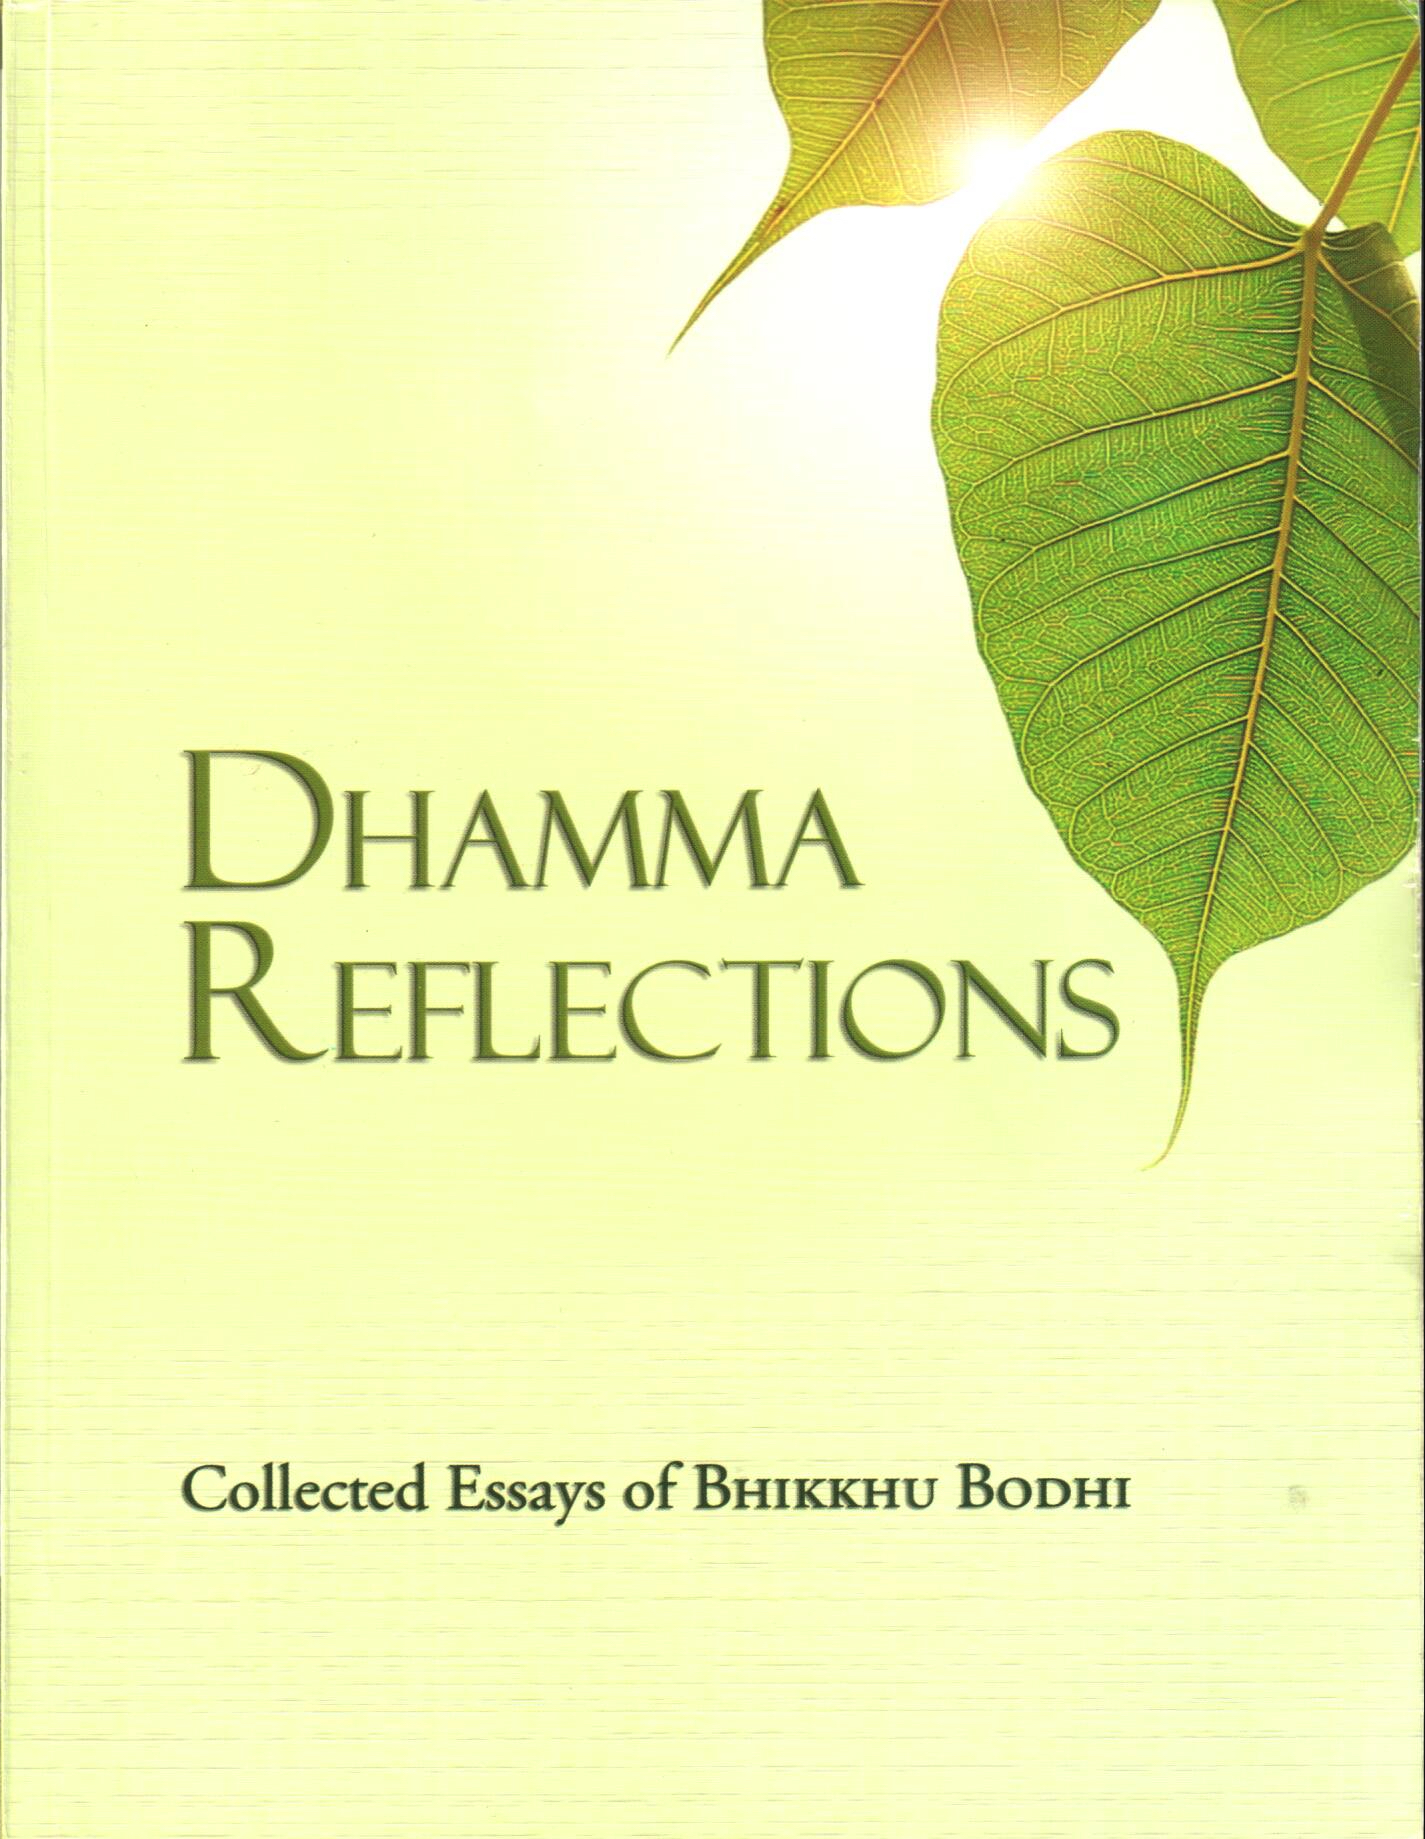 dhamma-reflections